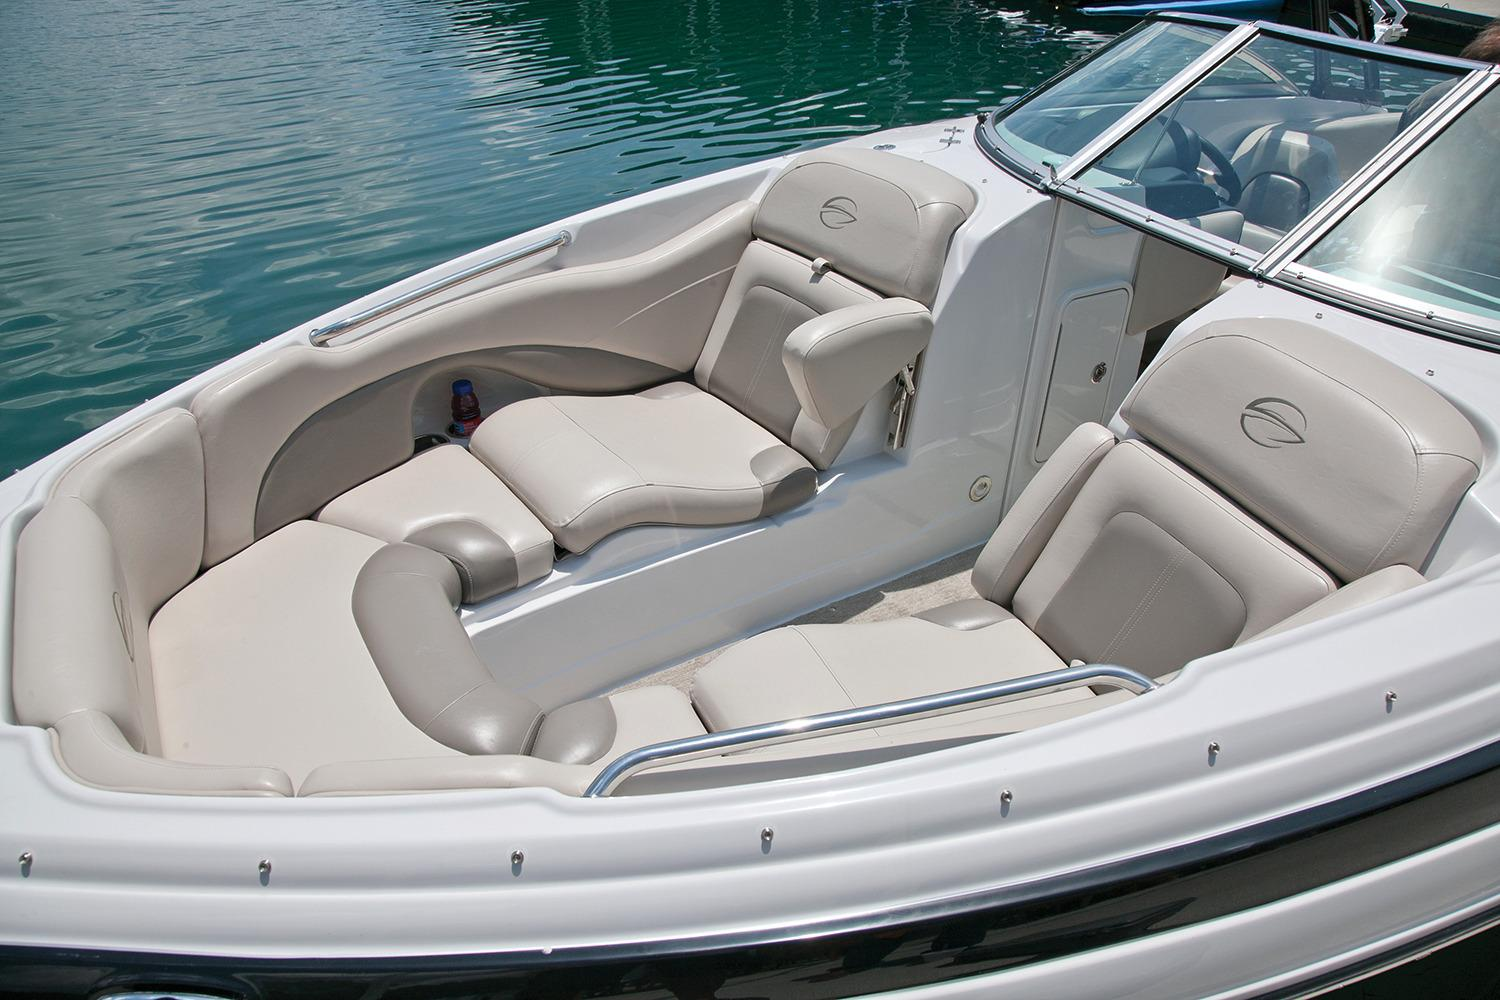 2017 Crownline 255 SS in Osage Beach, Missouri